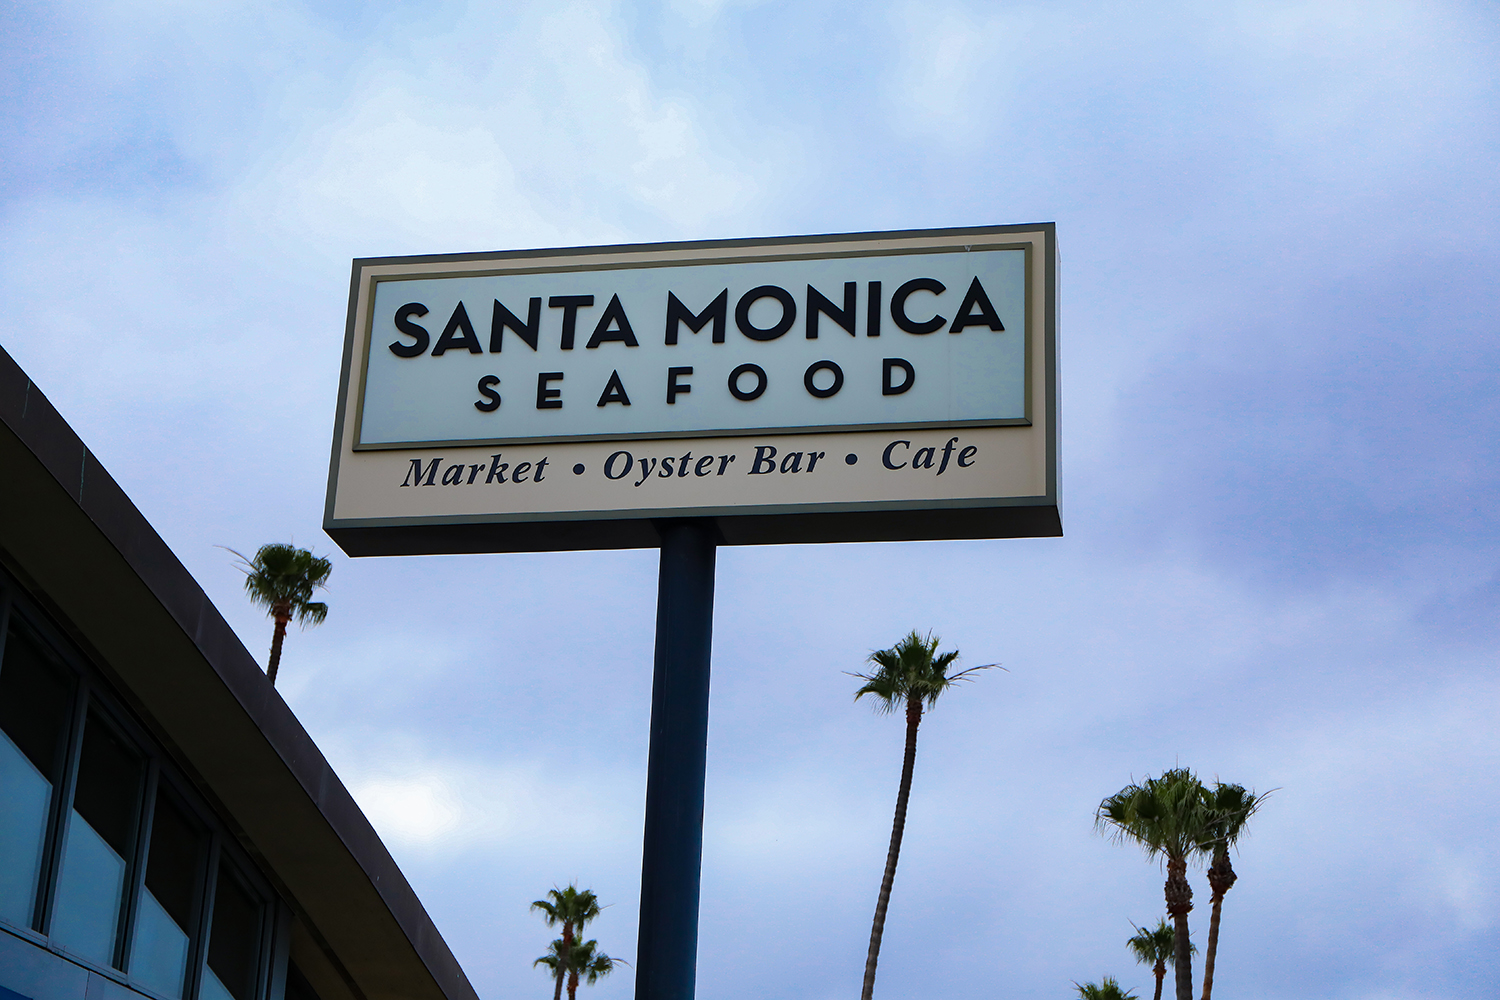 Love Santa Monica Seafood? The history behind the brand is amazing!